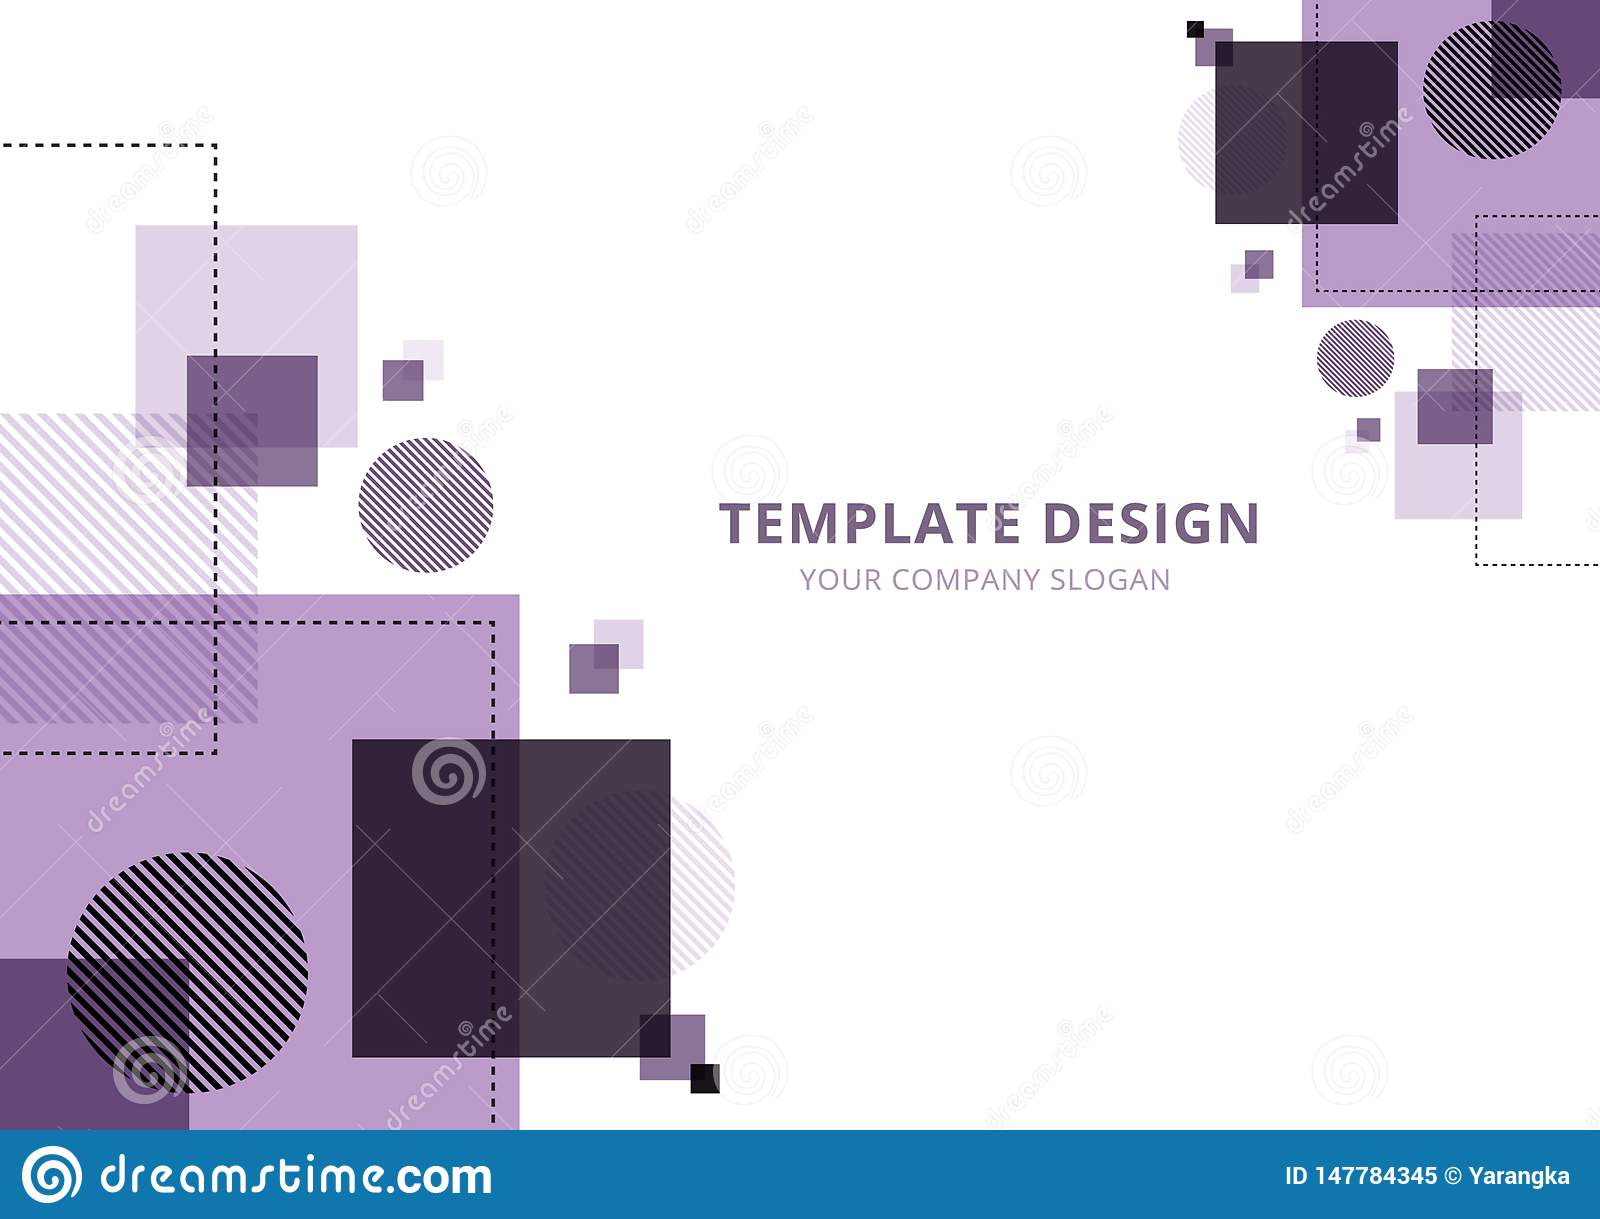 Template Design Geometric abstract  background , Purple Tone